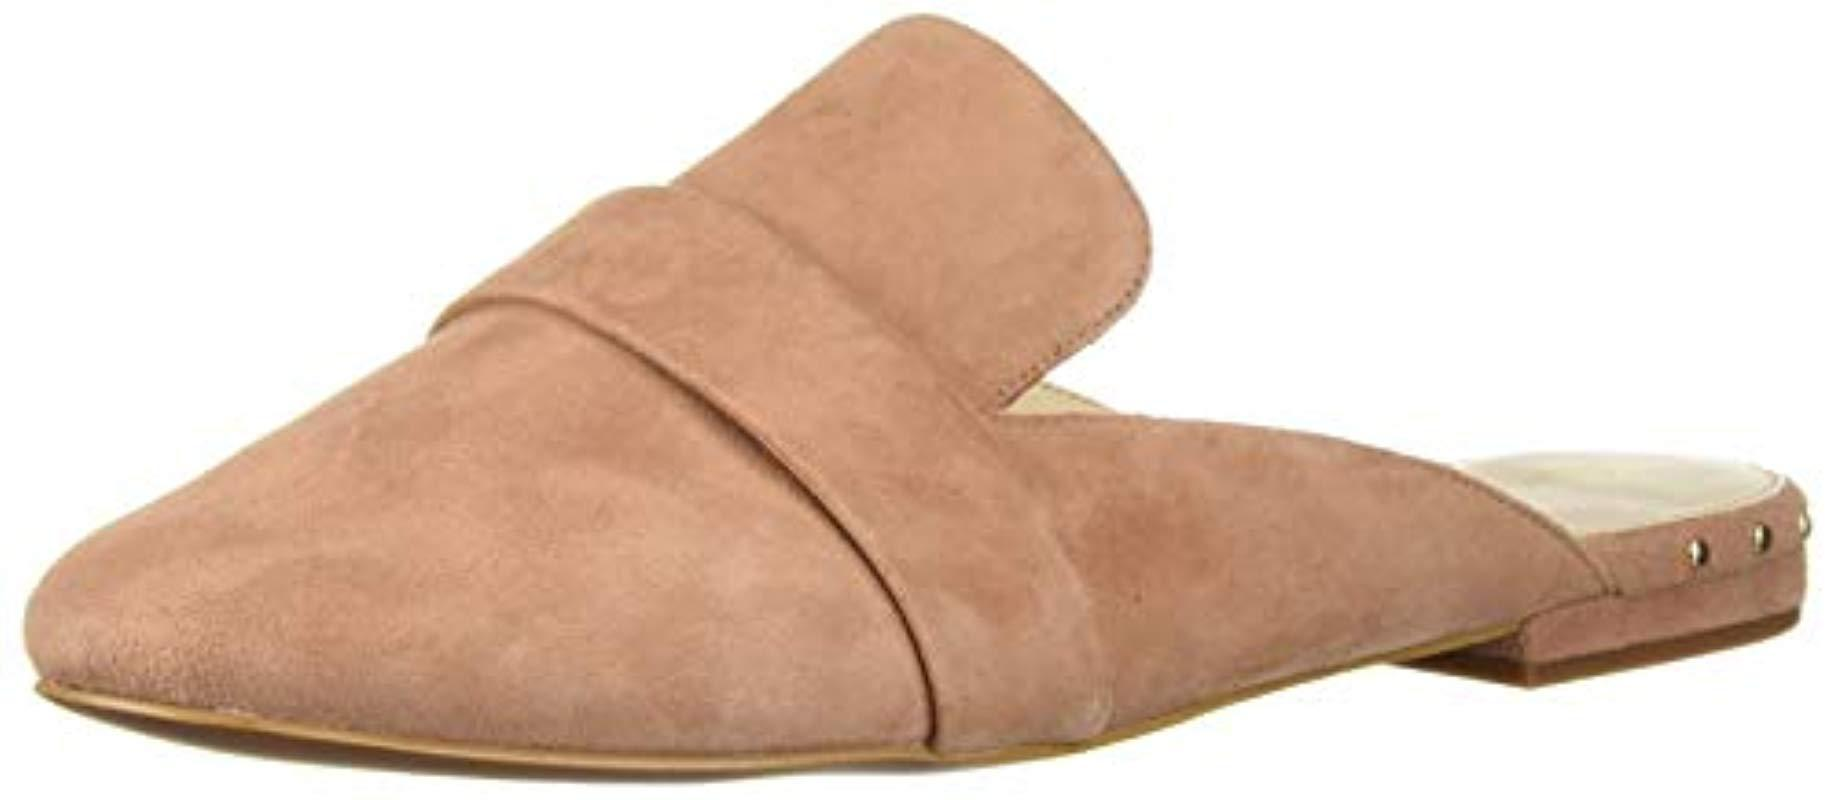 05fb1a83b42 Lyst - Cole Haan Deacon Loafer Mule - Save 27%